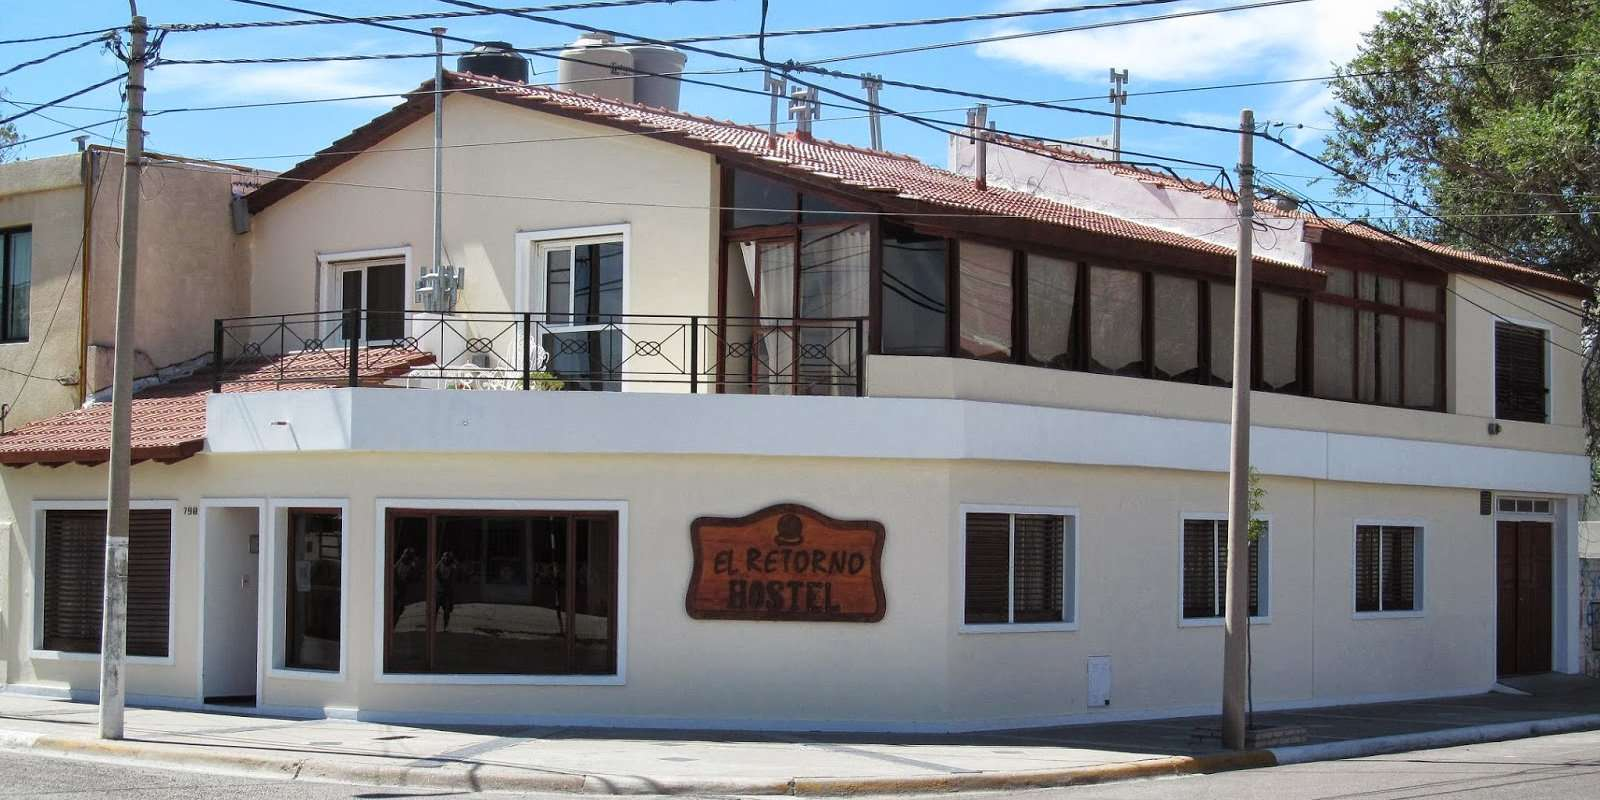 Gay guide to Puerto Madryn - El Retorno Hostel is a clean and comfortable budget option.